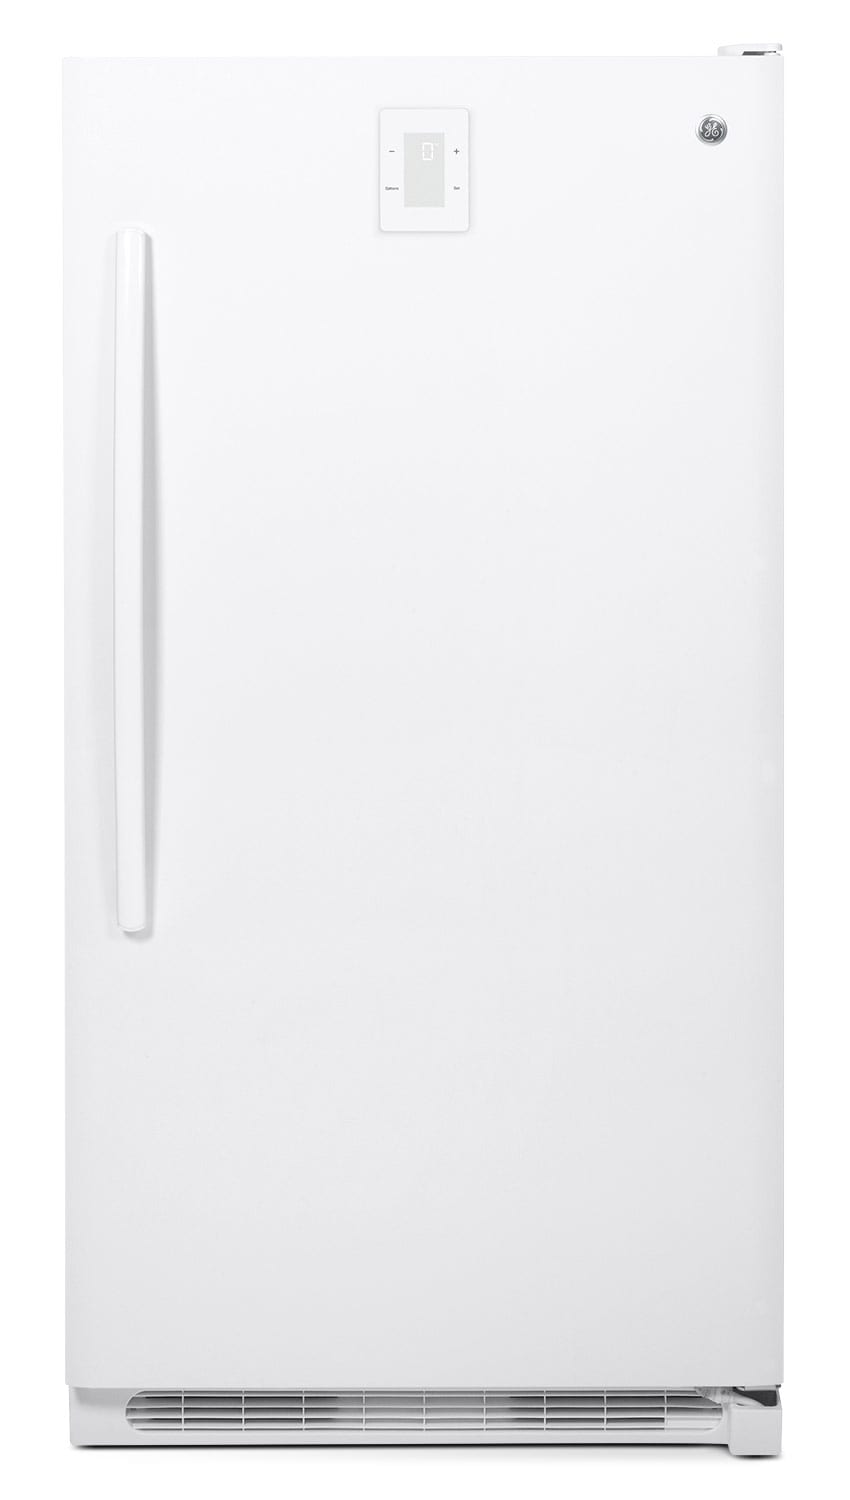 Refrigerators and Freezers - GE 16.6 Cu. Ft. Frost-Free Upright Freezer - White